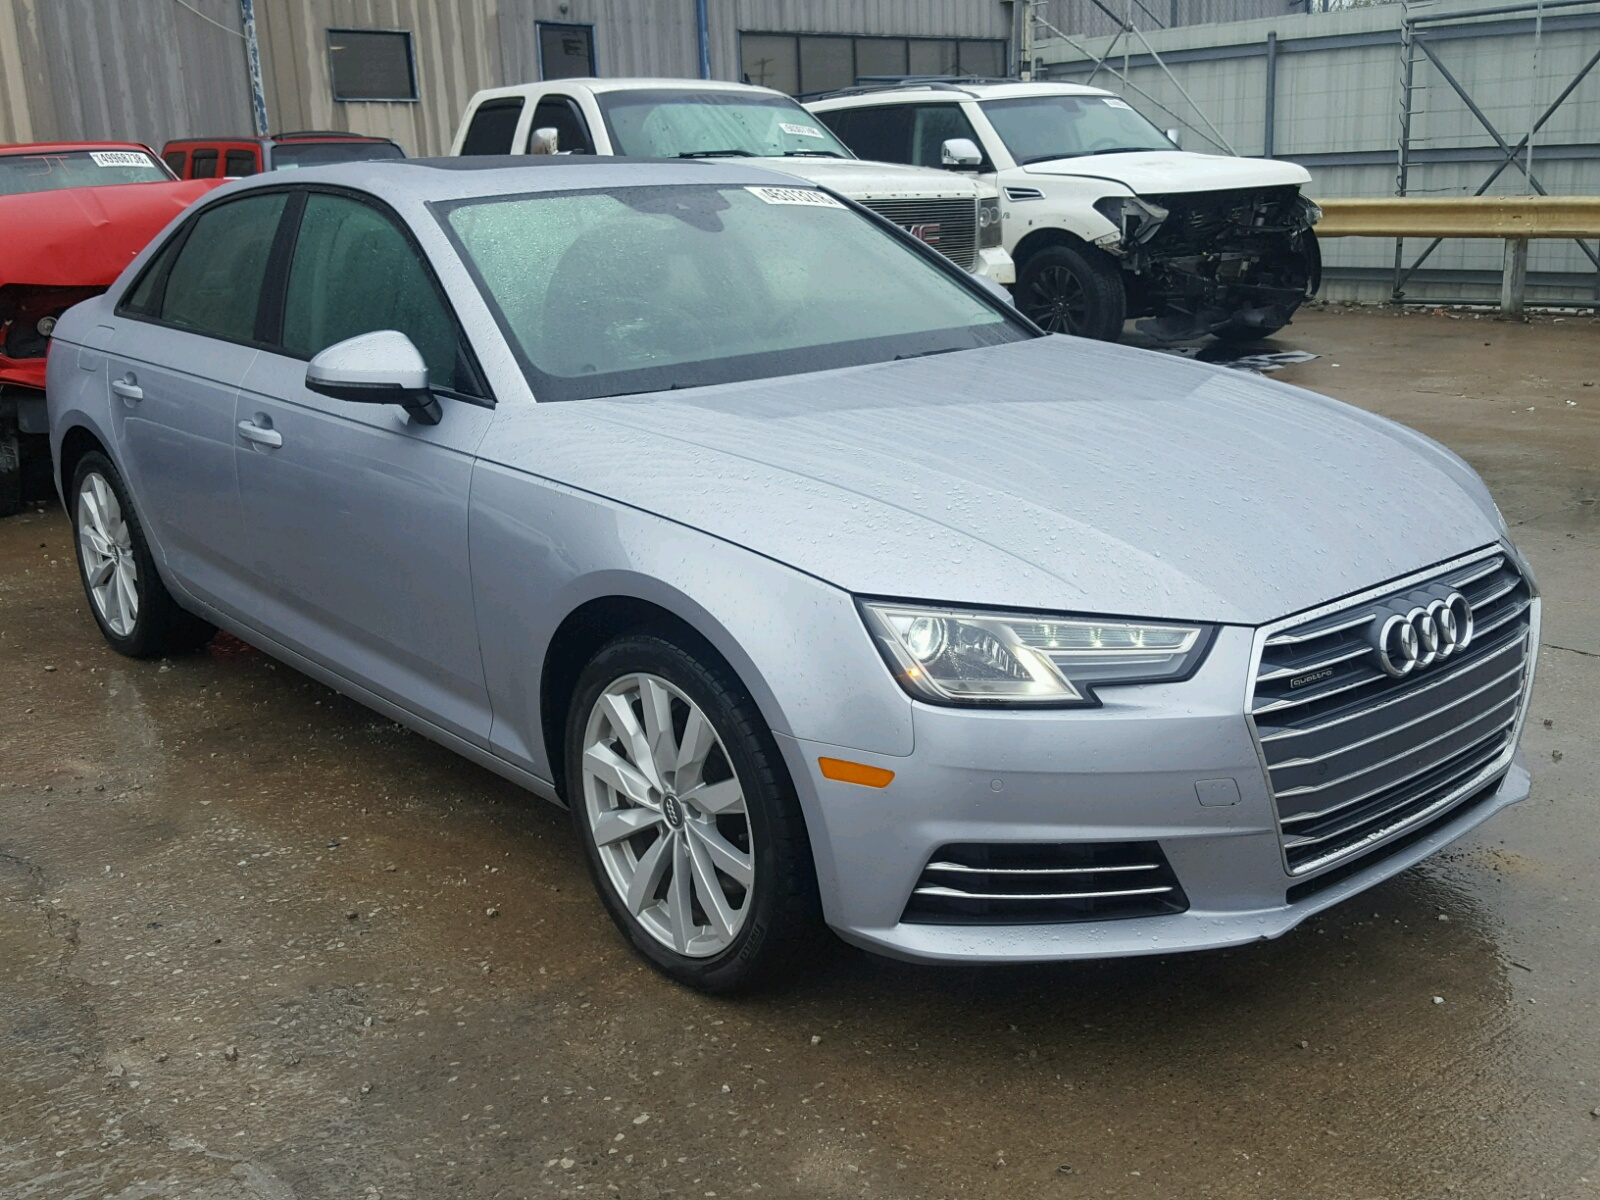 Auto Auction Ended on VIN WAUANAF40HN 2017 Audi A4 Premium in